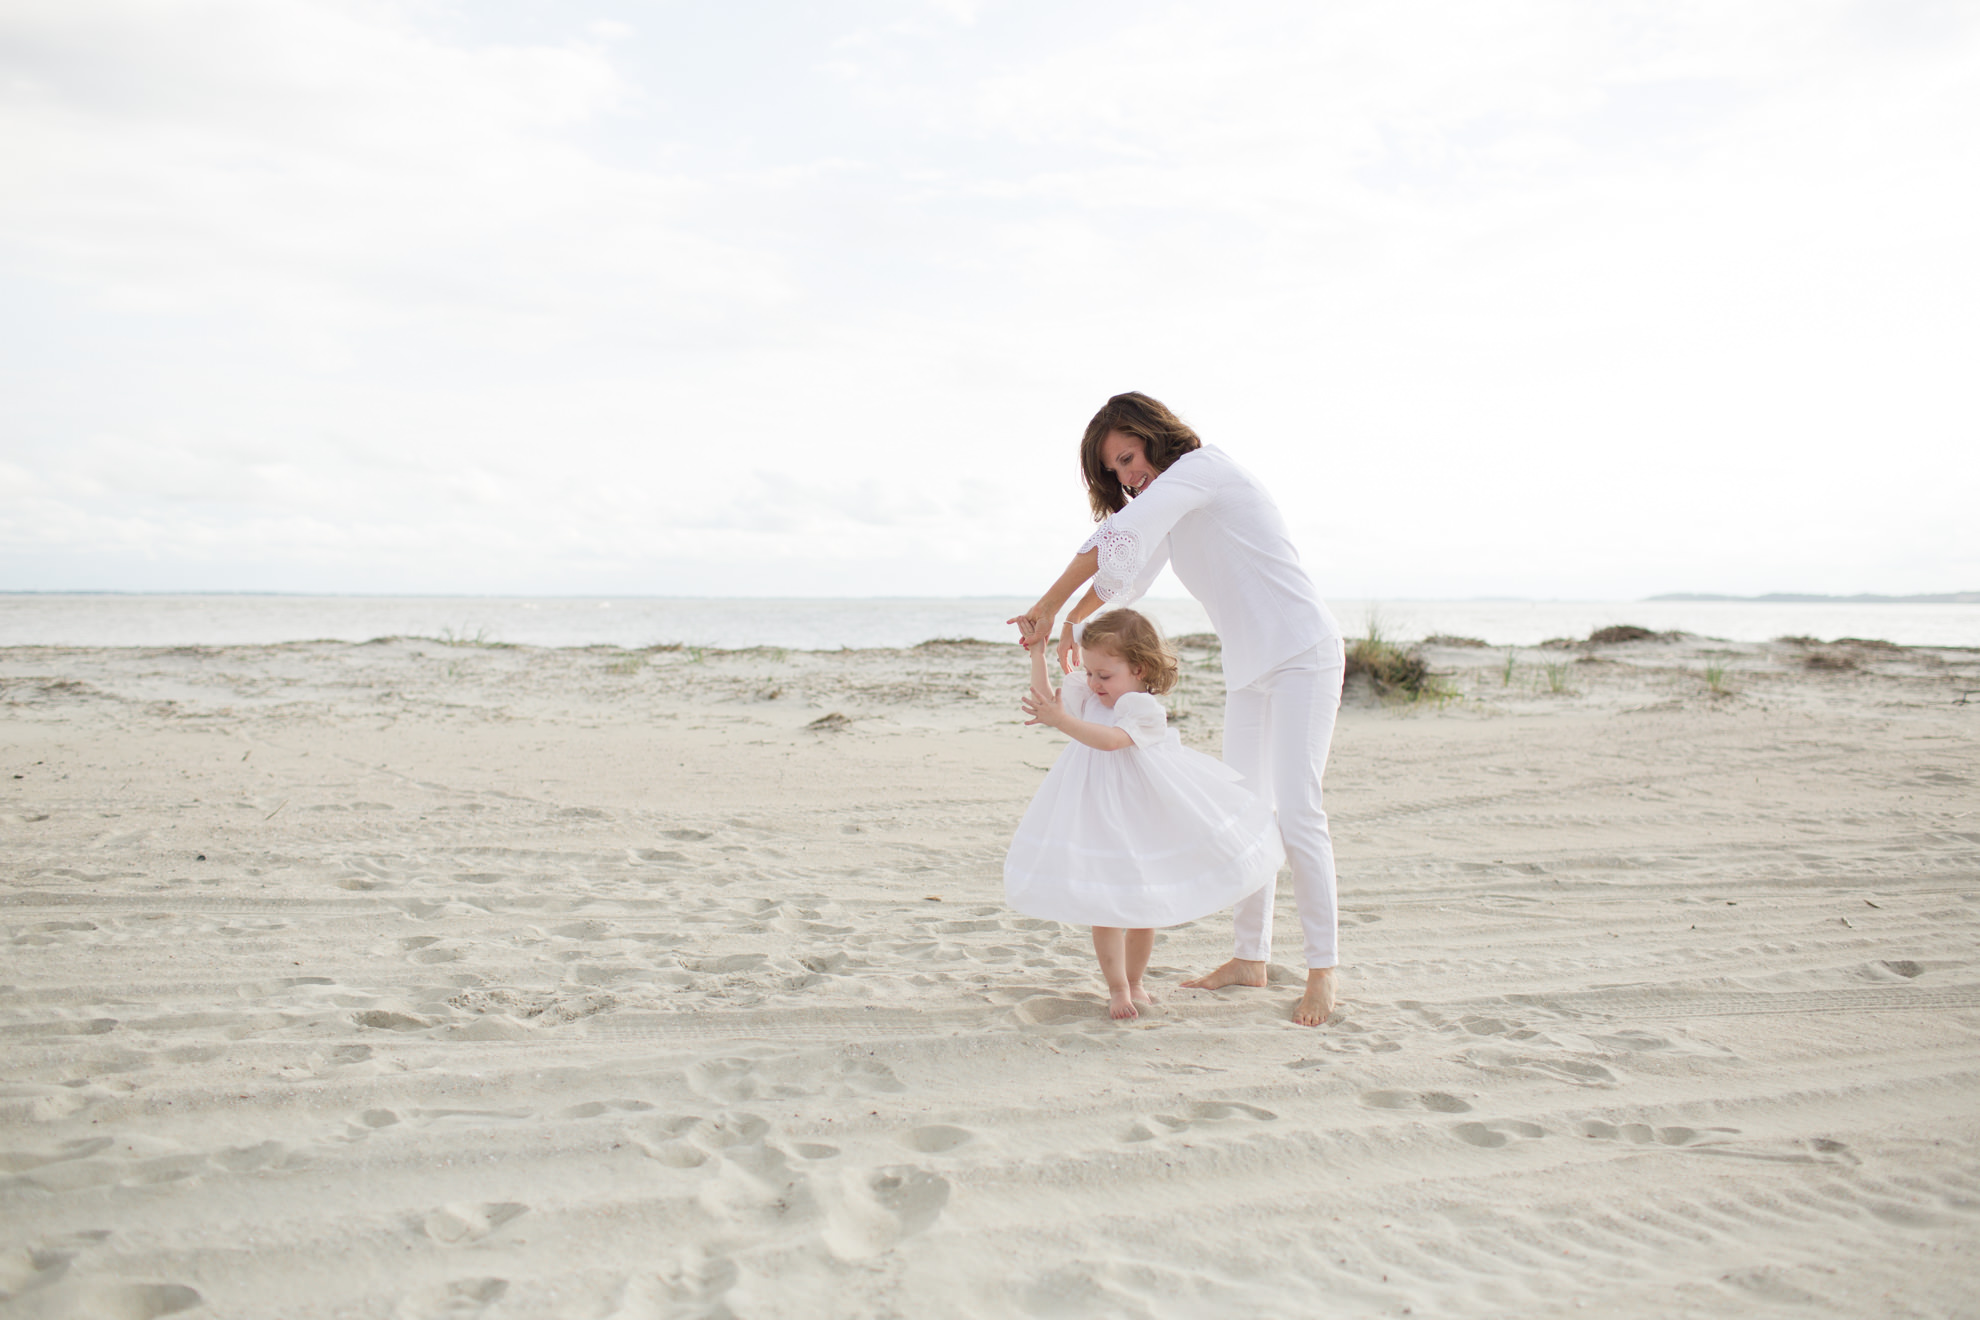 mom-and-daughter-playing-on-the-beach